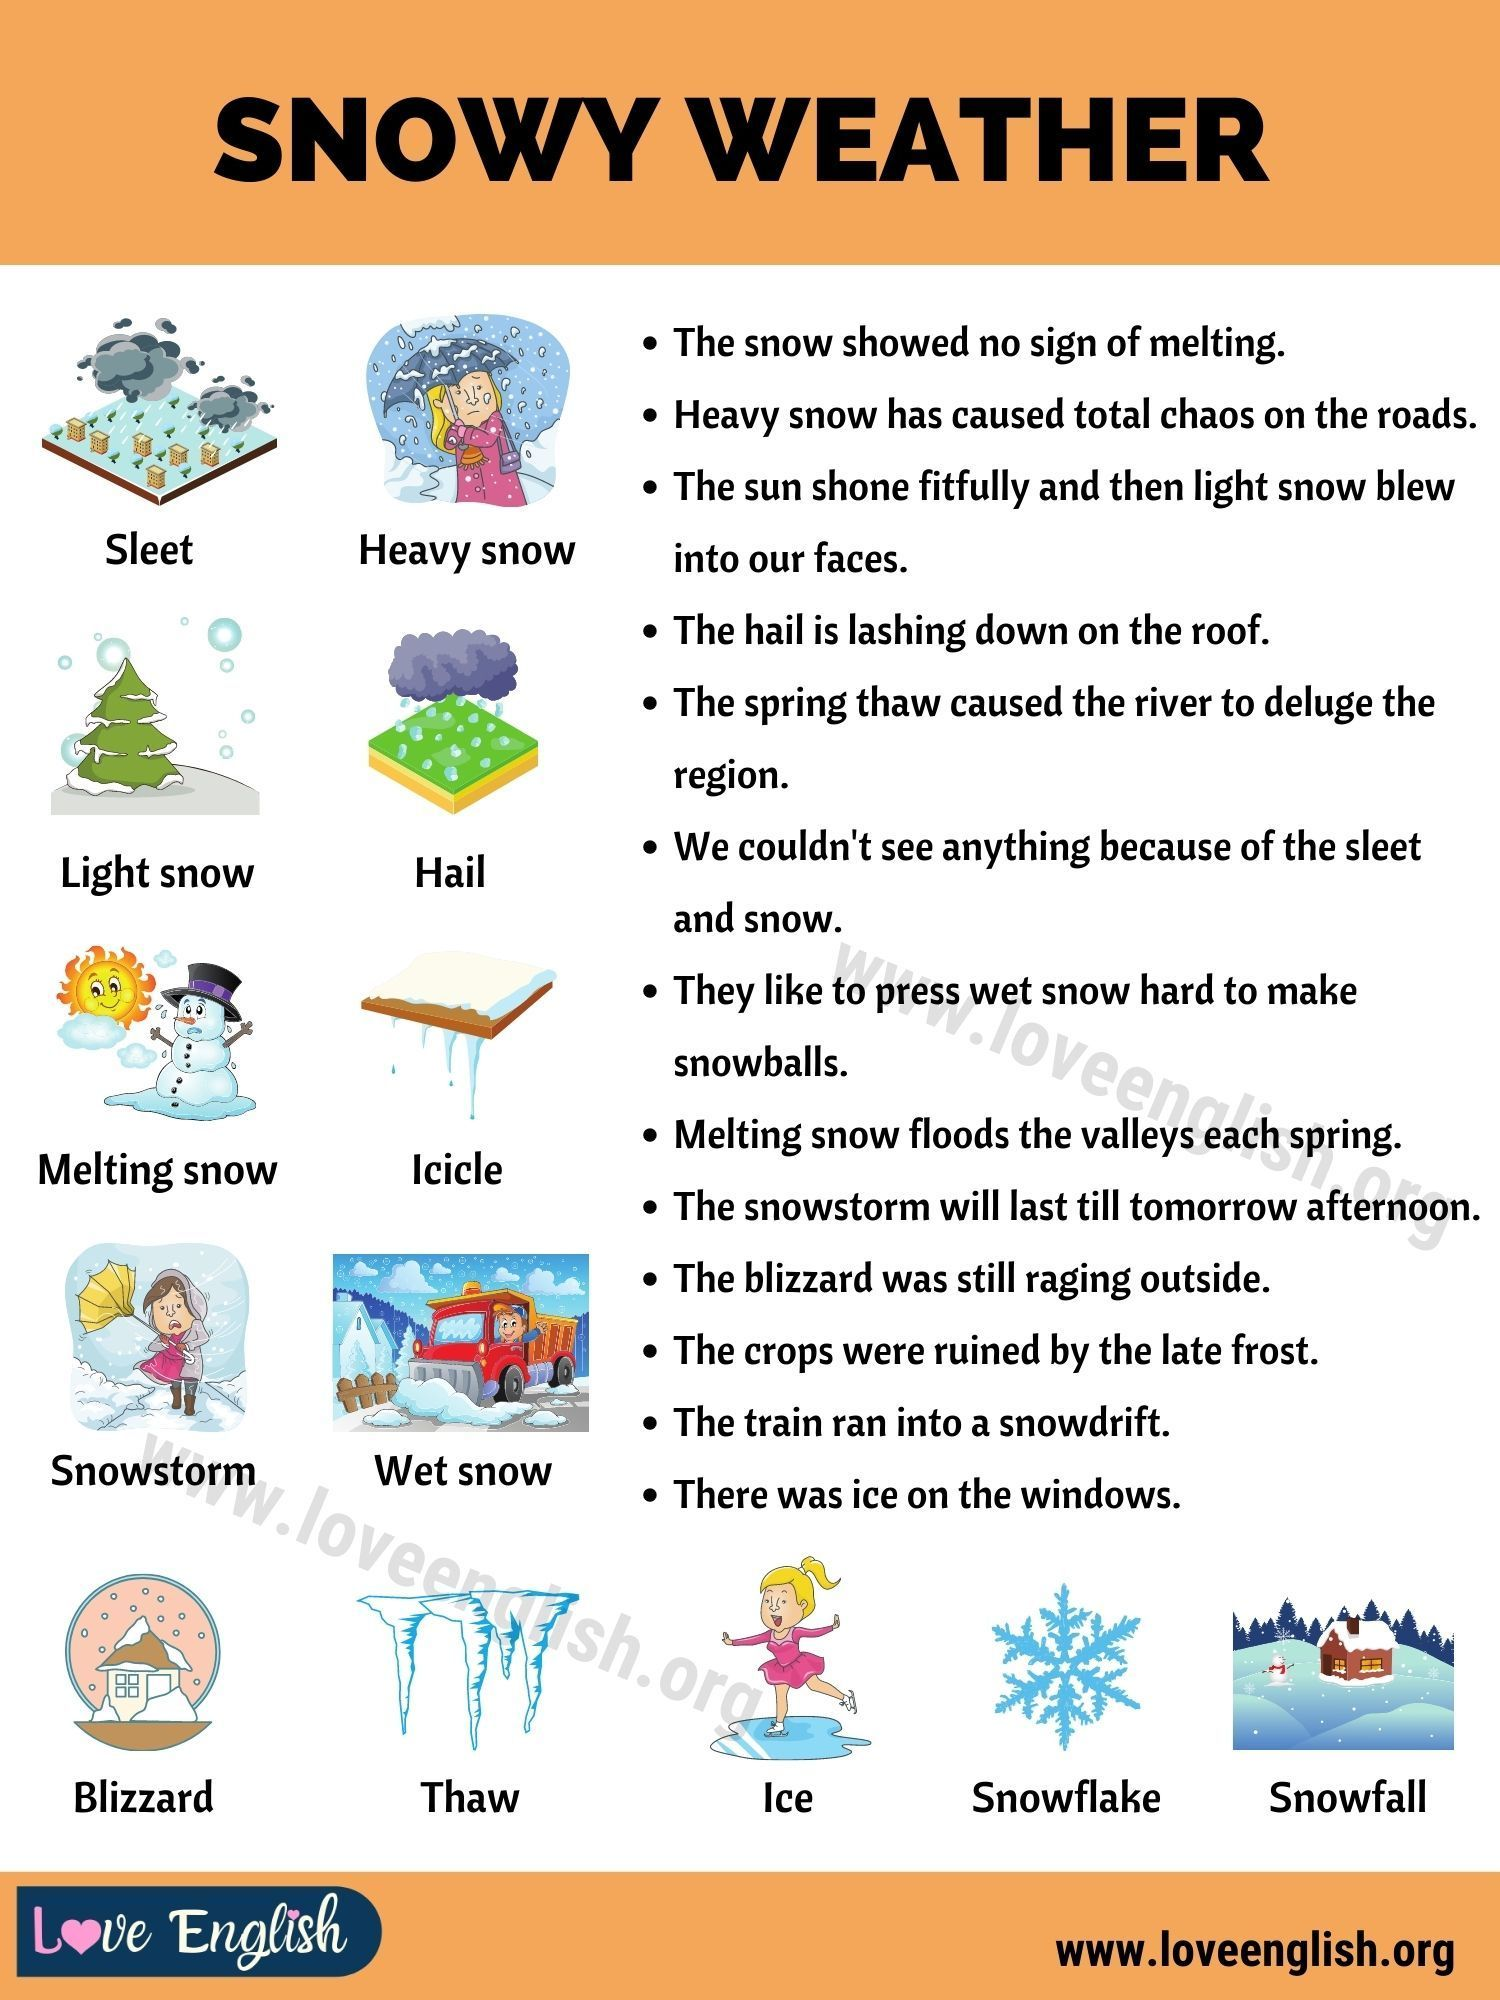 Snowy Weather How To Express Snowy Weather In Sentences Love English Snowy Weather Weather Vocabulary Weather In English [ 2000 x 1500 Pixel ]